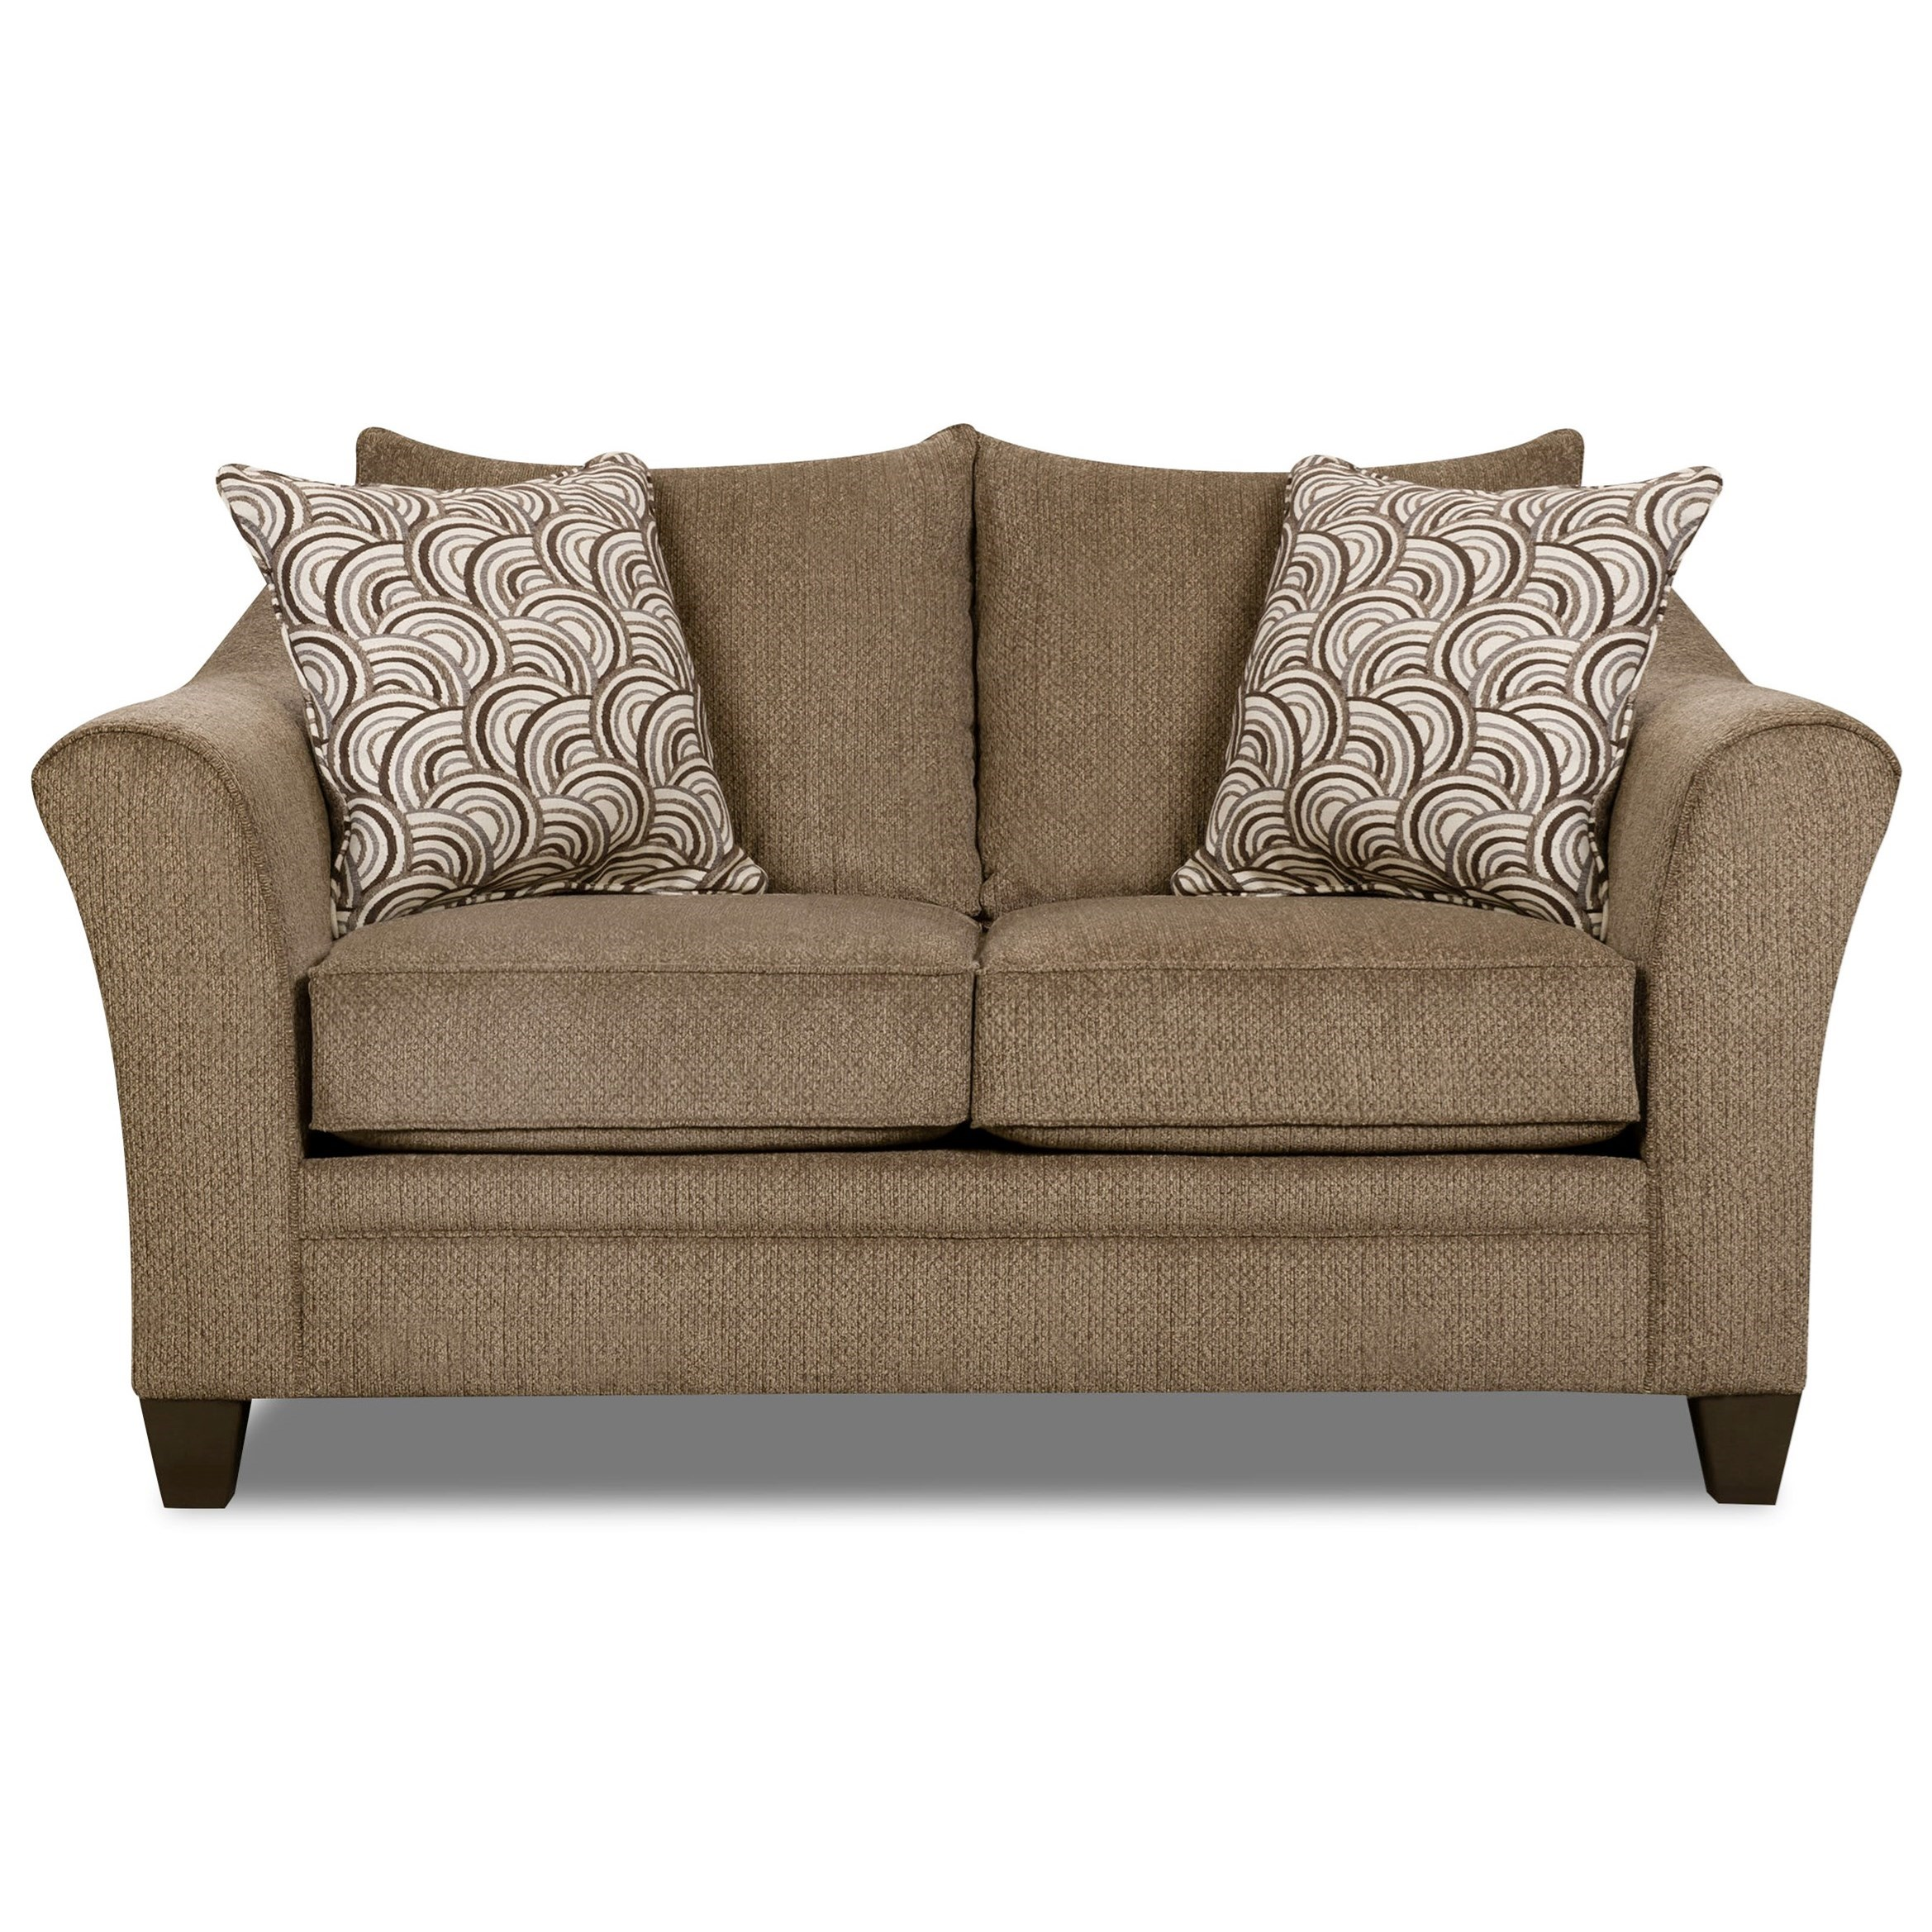 United Furniture Industries 6485 Transitional Loveseat - Item Number: 6485Loveseat-AlbanyTruffle